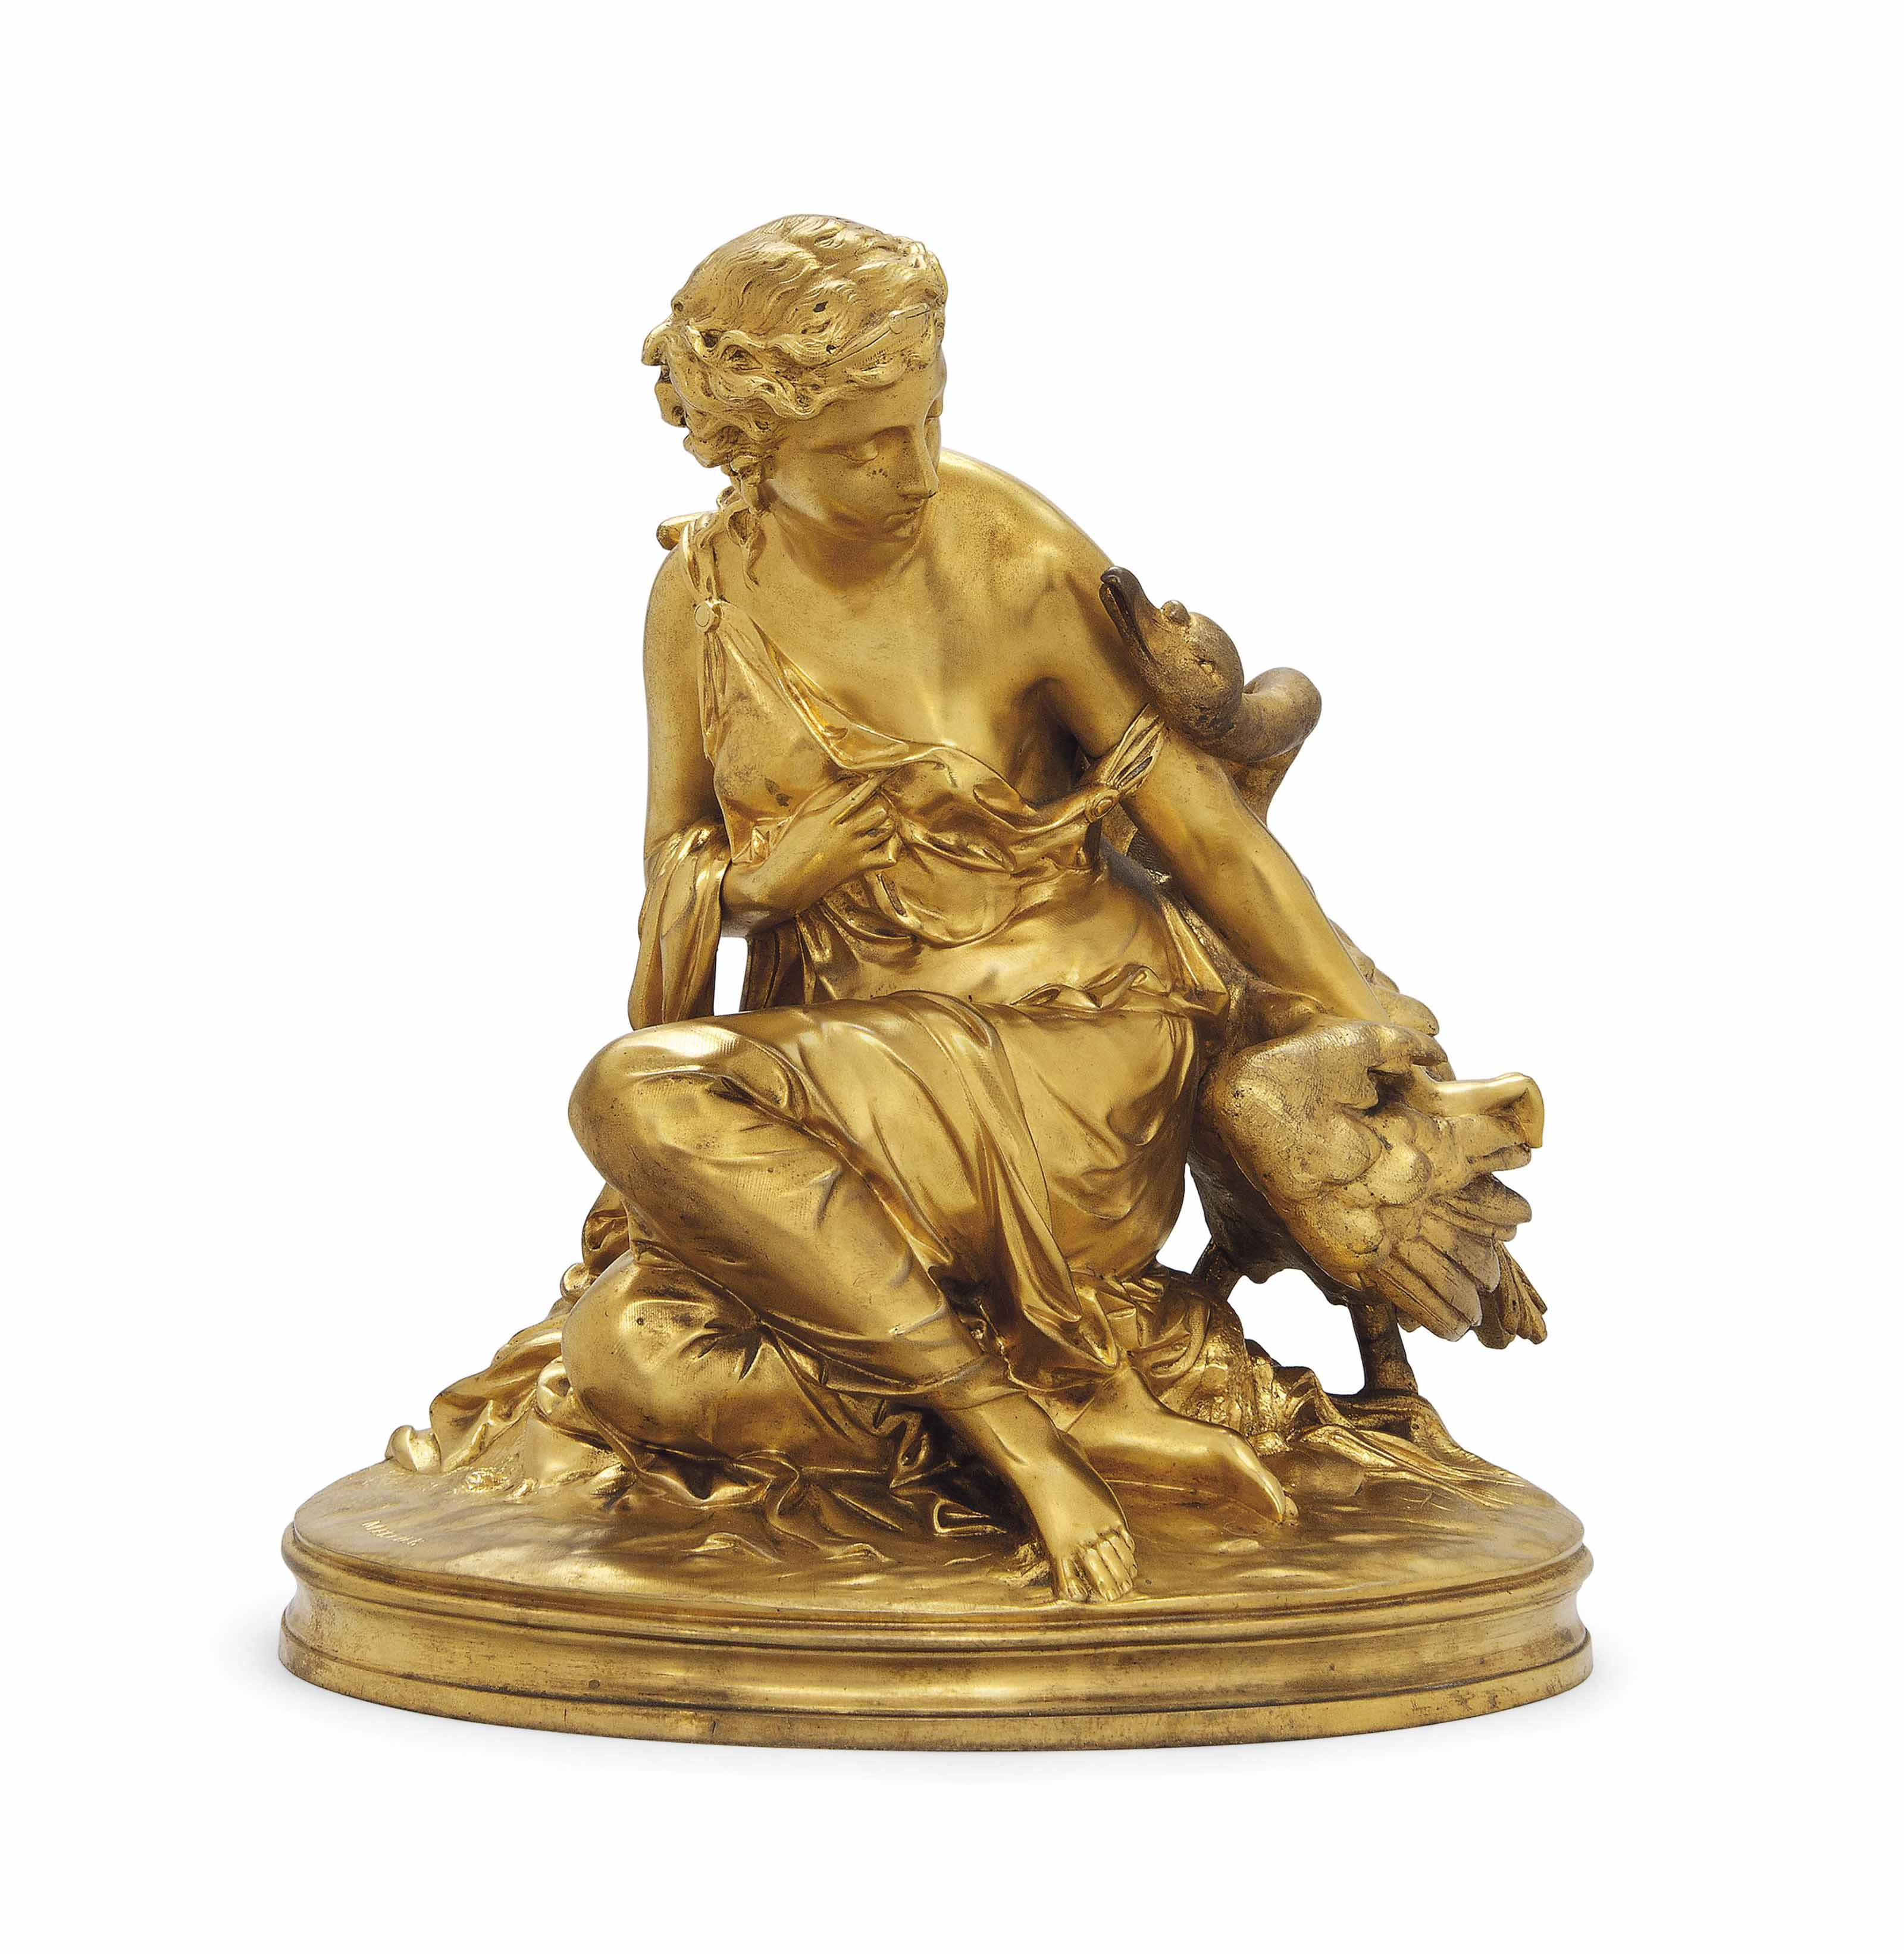 A FRENCH GILT-BRONZE GROUP OF LEDA AND THE SWAN